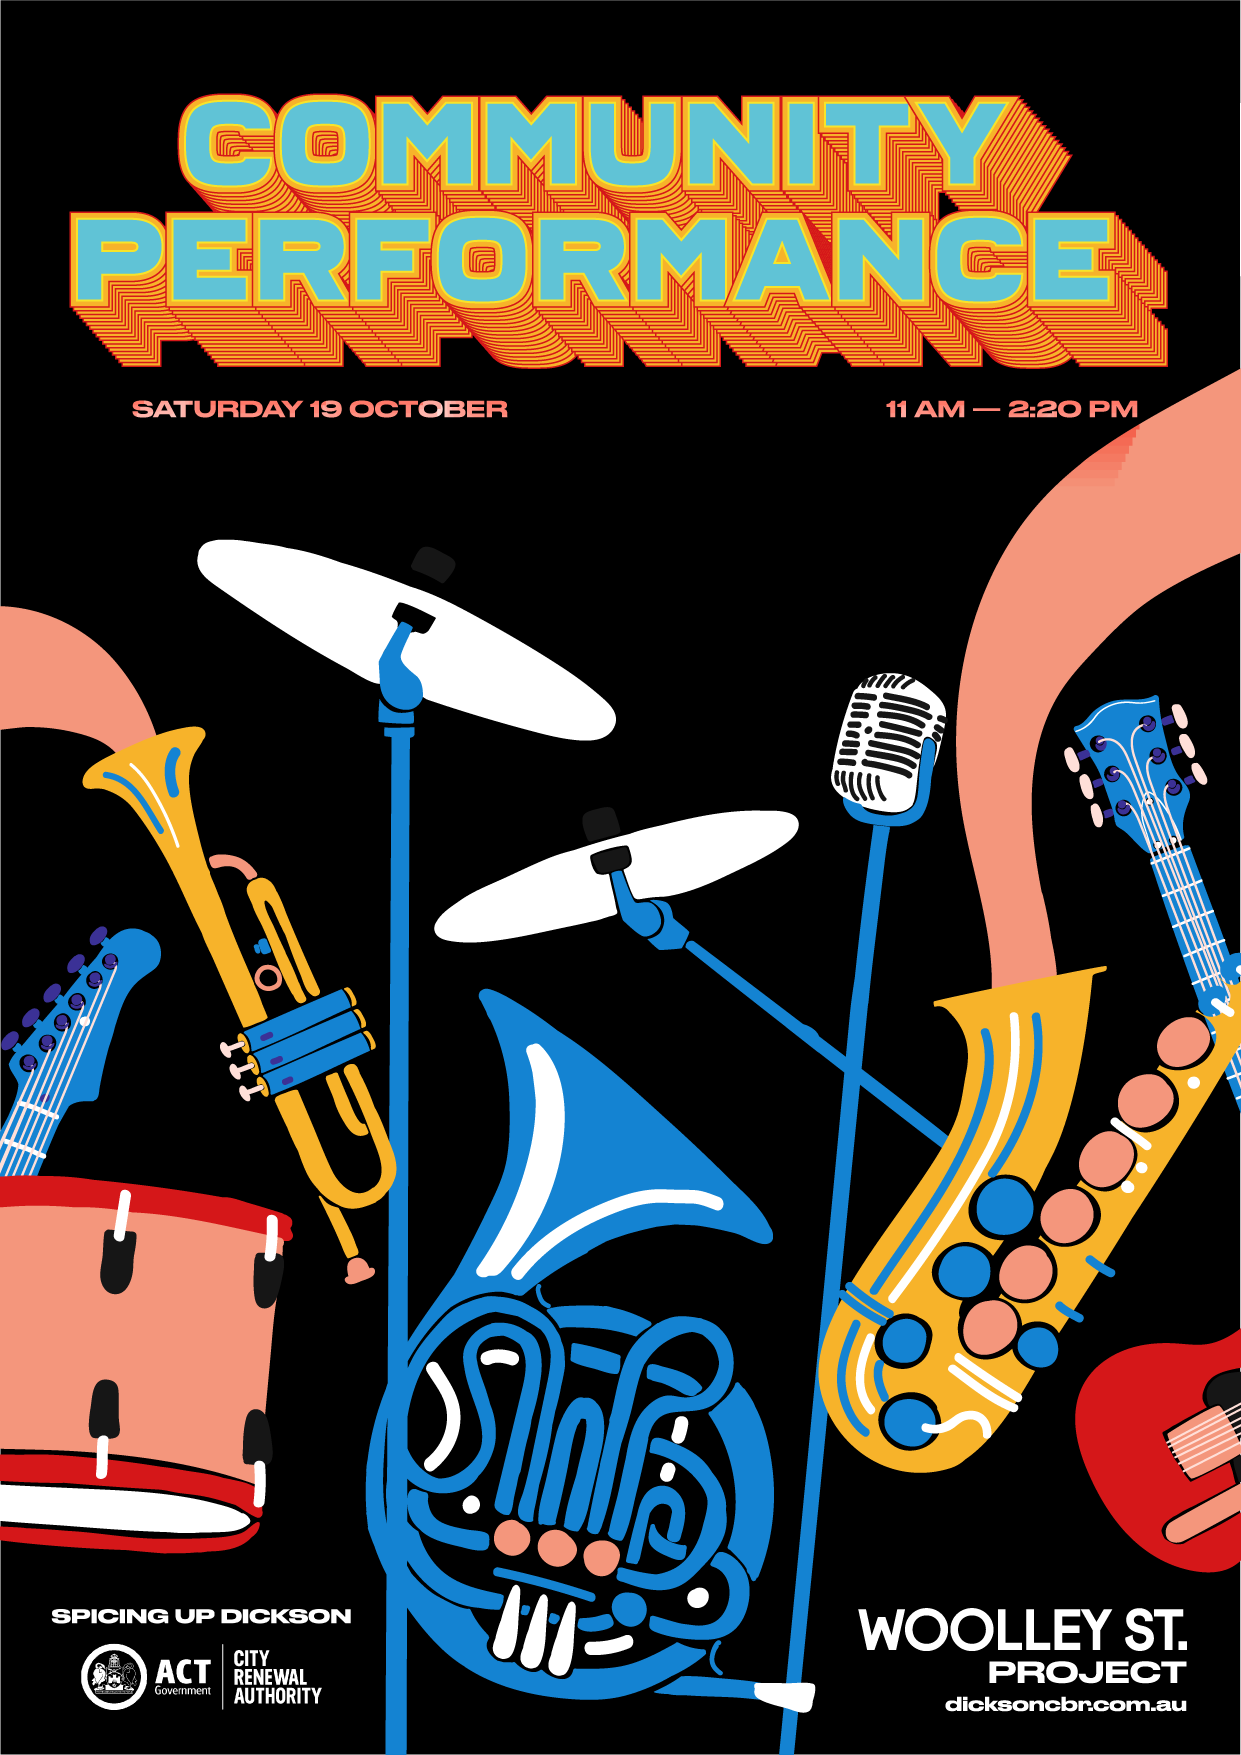 poster promoting dickson community performance